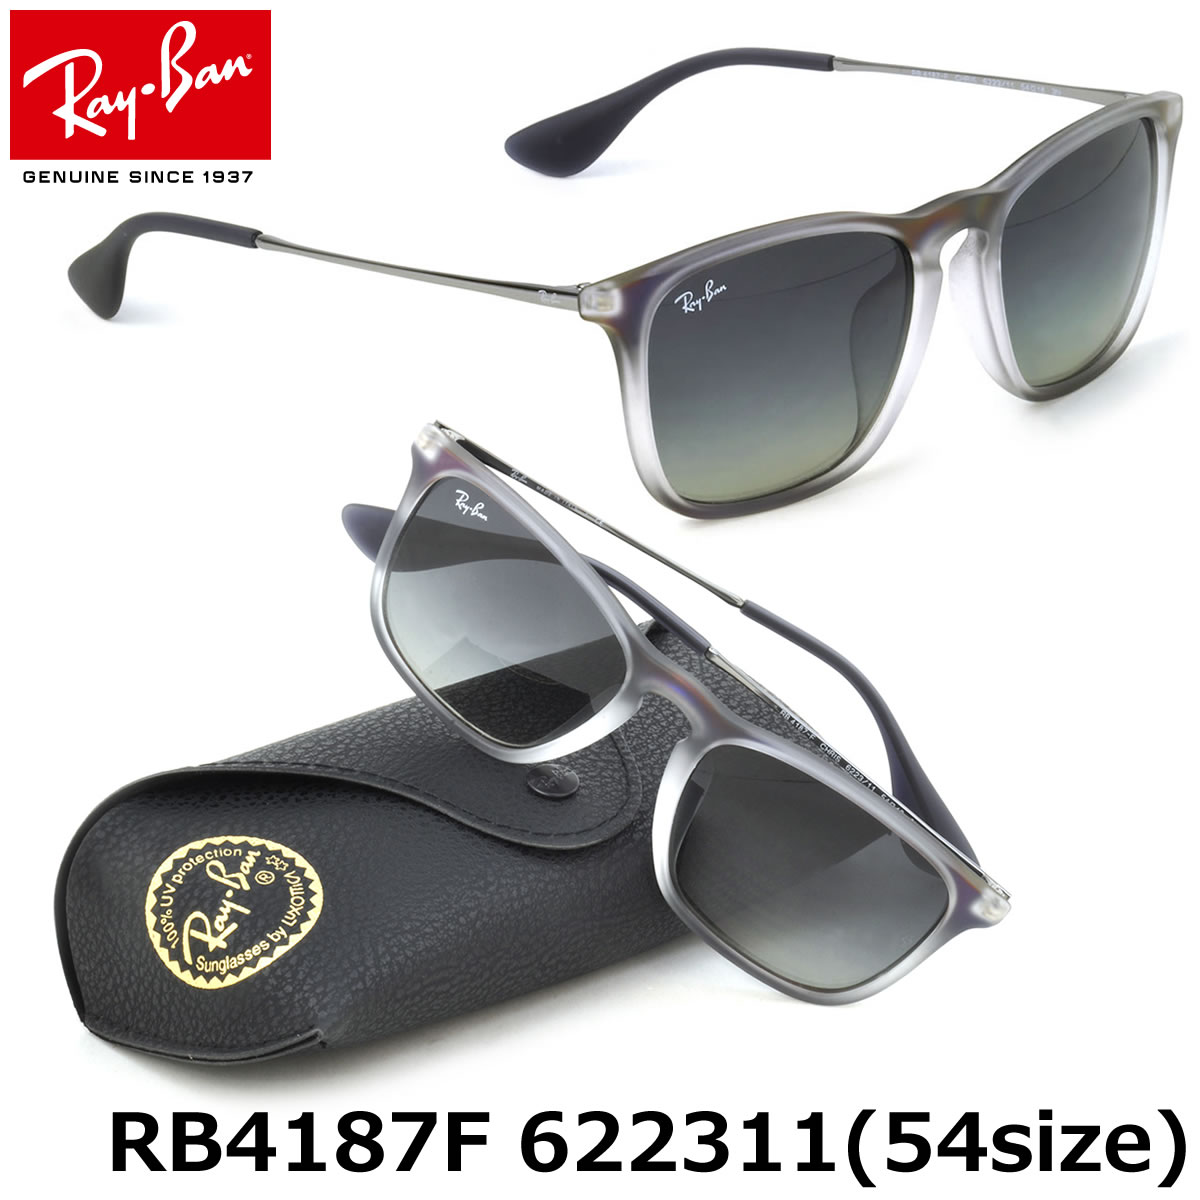 e9986038f94 It is approximately all articles point 15 times - up to 34 times +3 time!  Ray-Ban sunglasses Chris Ray-Ban RB4187F 622311 54 size Ray-Ban RAYBAN  CHRIS ...